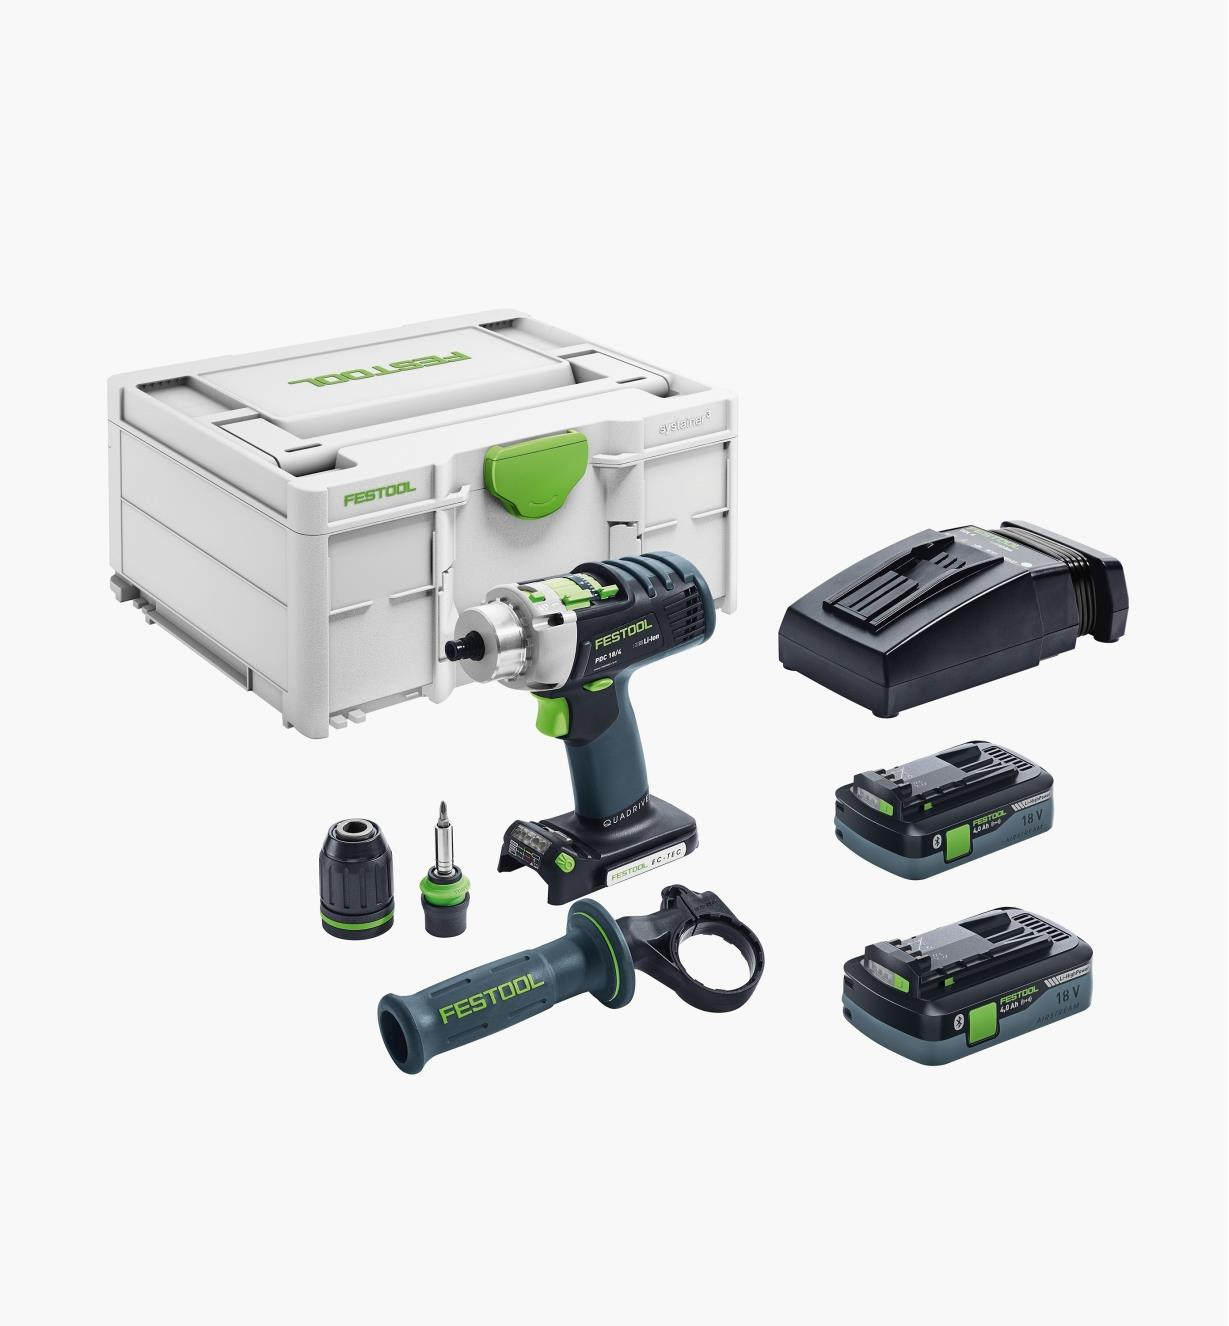 ZC576476 - Ensemble perceuse-visseuse à percussion sans fil PDC 18 Festool